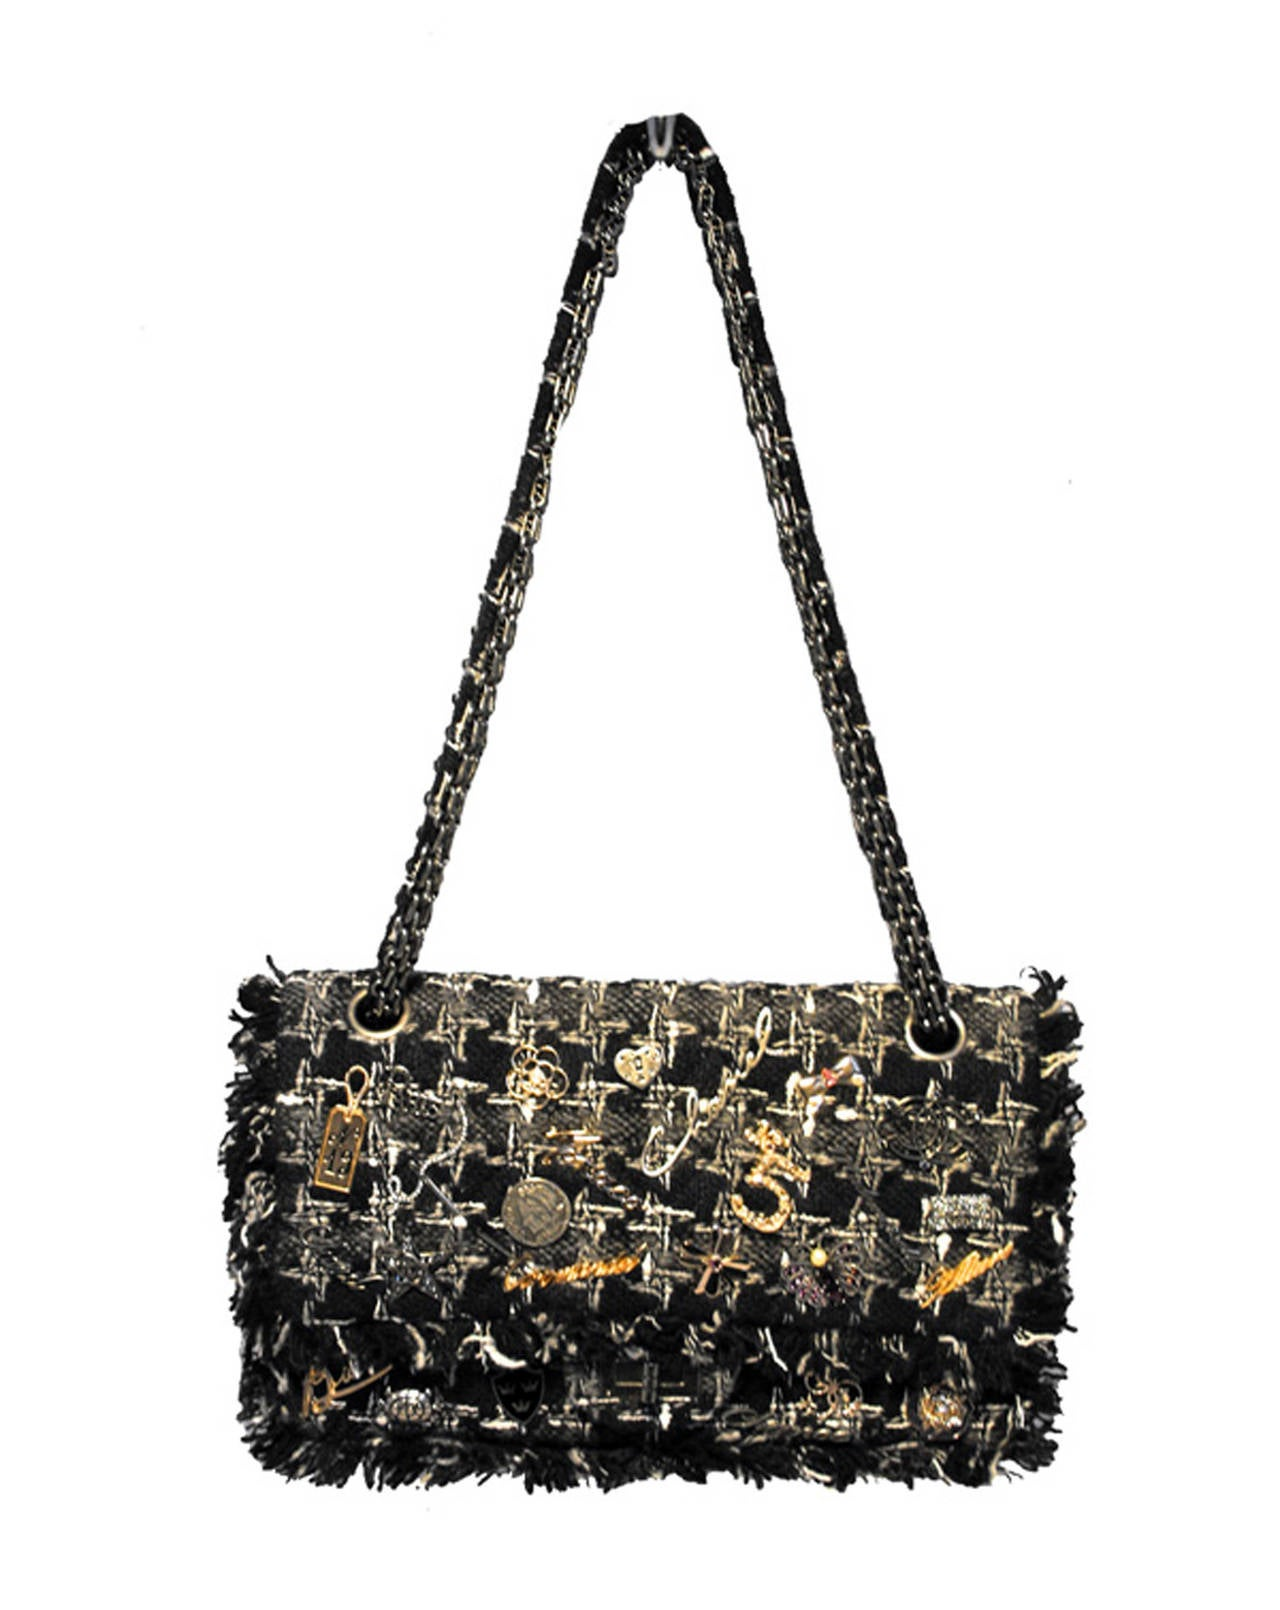 RARE CHANEL Charms classic 10inch 2.55 double flap in EXCELLENT condition.  Black, grey, white woven tweed exterior trimmed with rare Chanel charms on the front side.  Mademoiselle style twist closure opens double flap style to a black leather lined